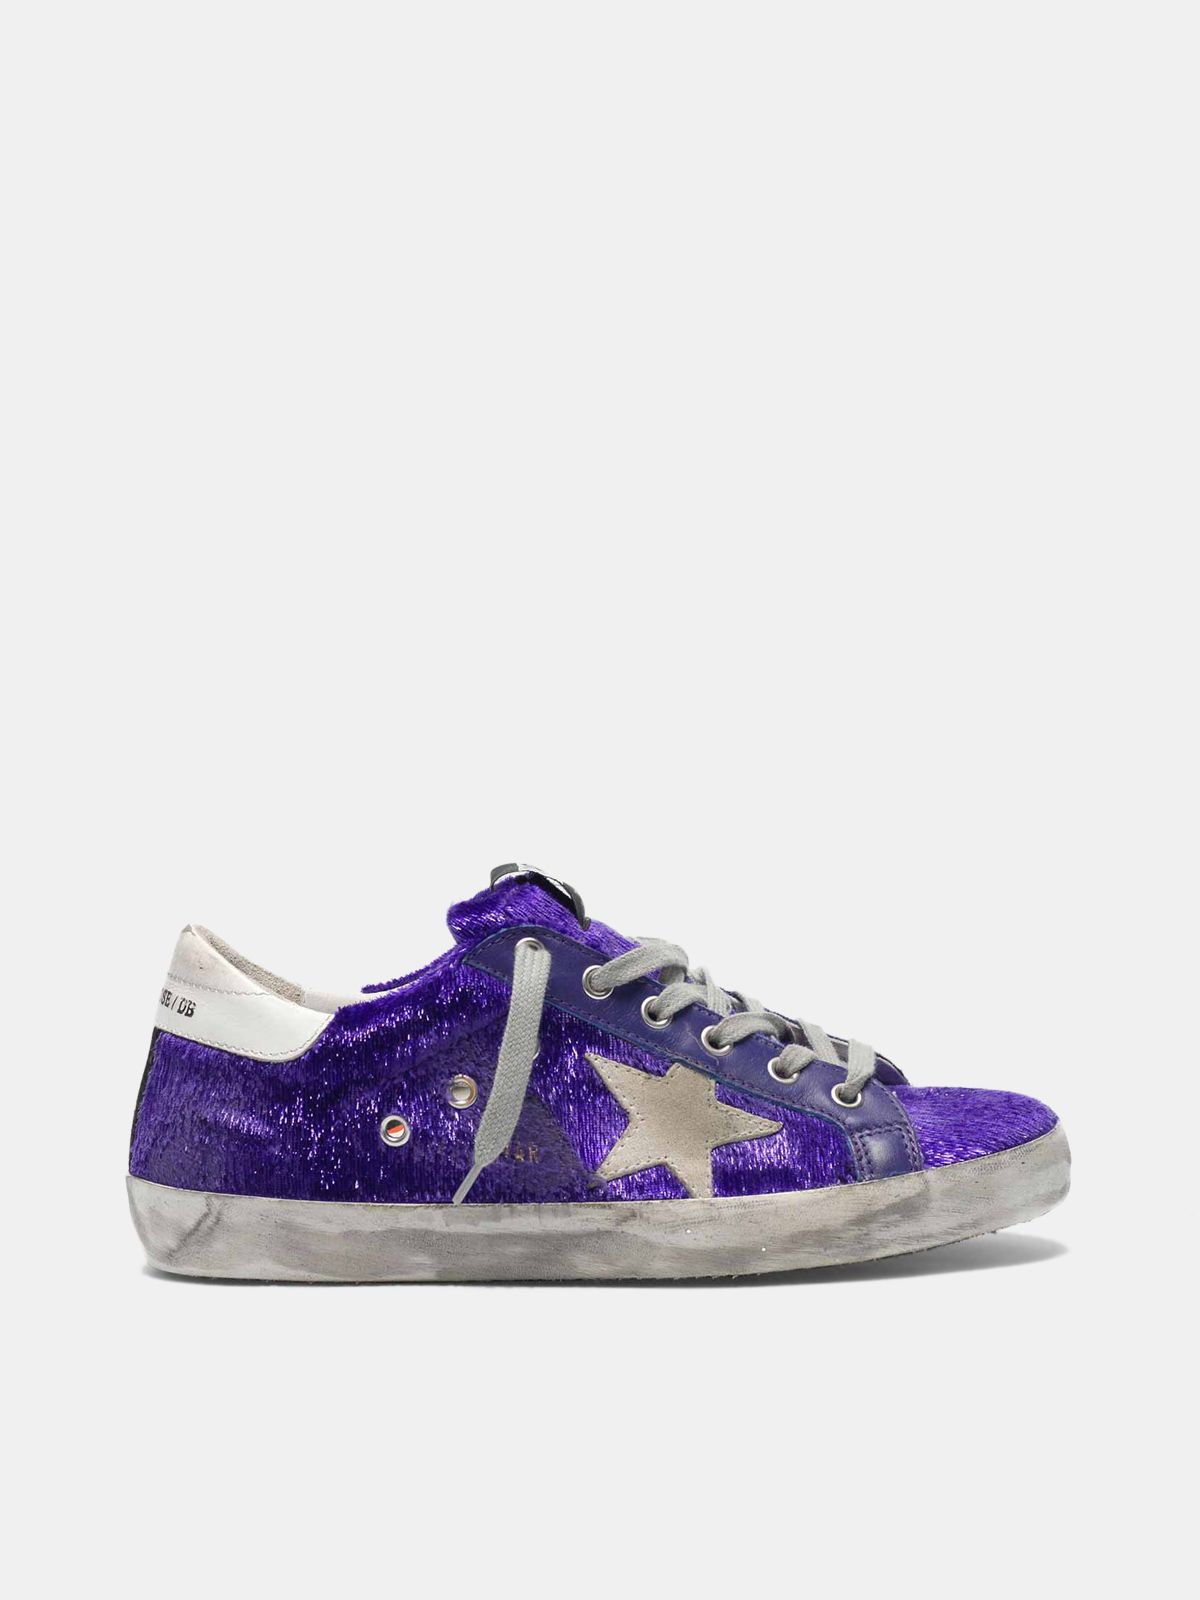 Golden Goose - Super-Star sneakers with purple shimmer lamé threads in